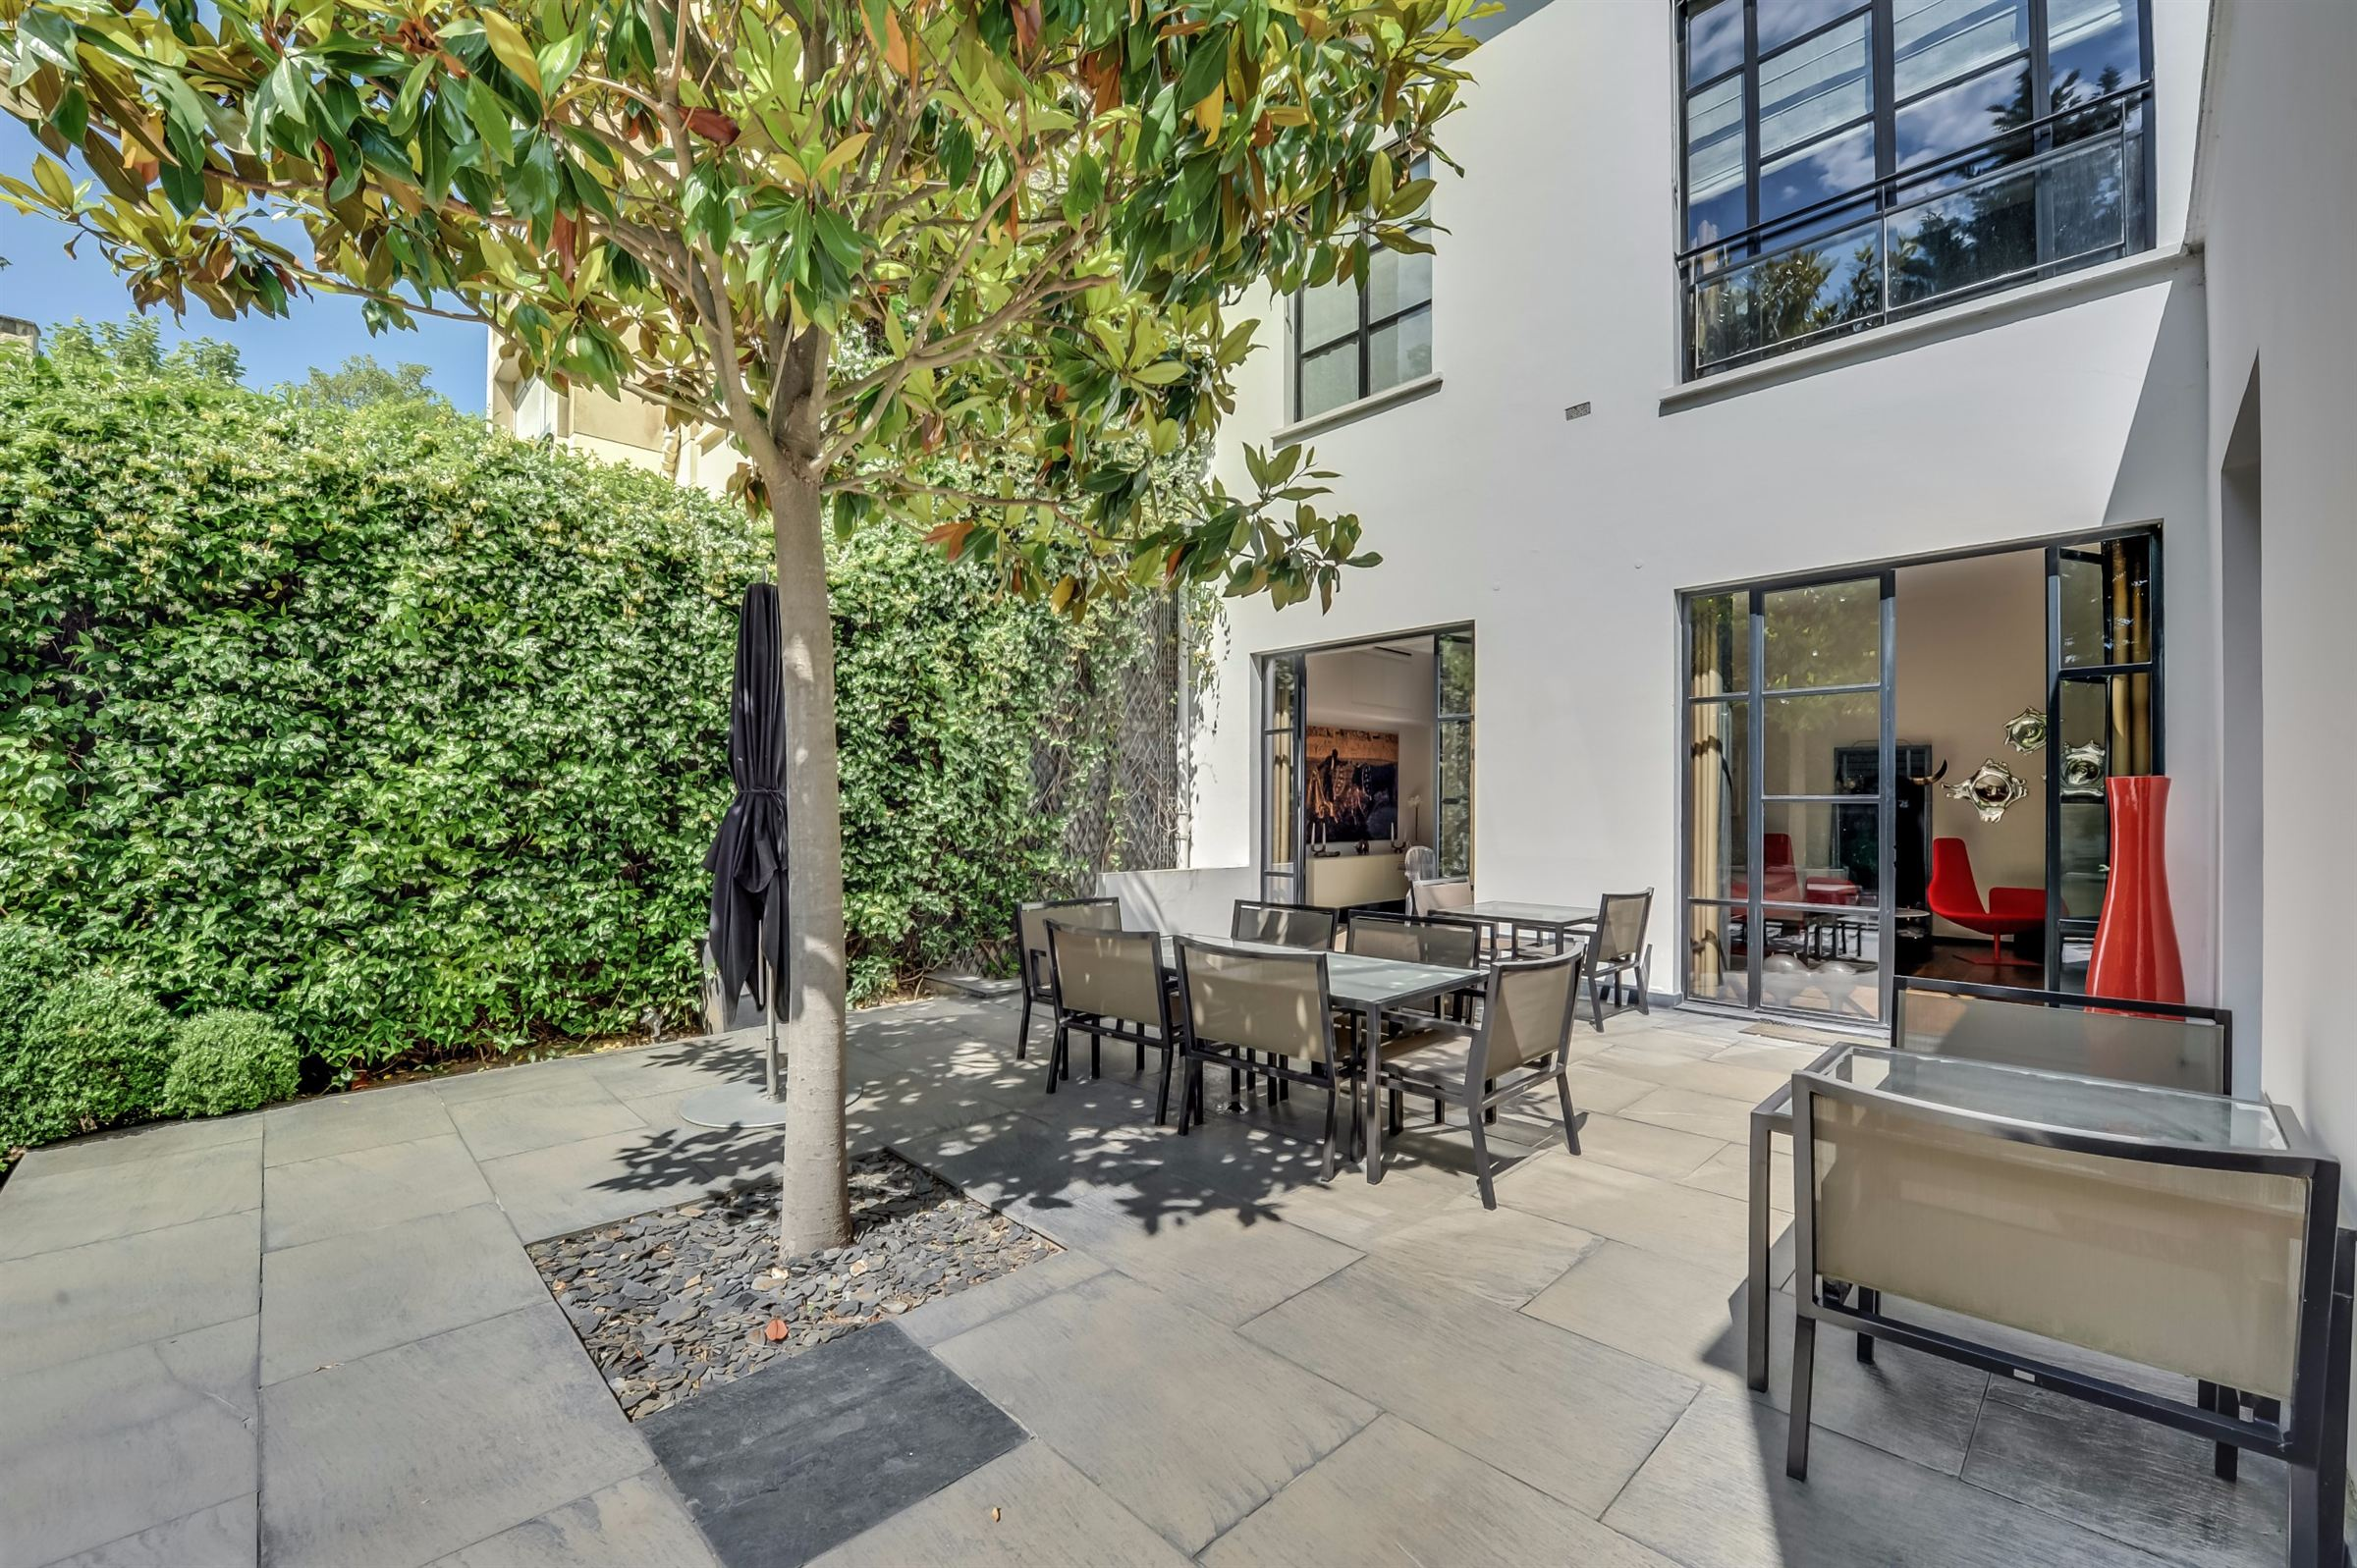 sales property at A 550 sq.m Private Mansion, Neuilly - Saint James, 5 bedrooms